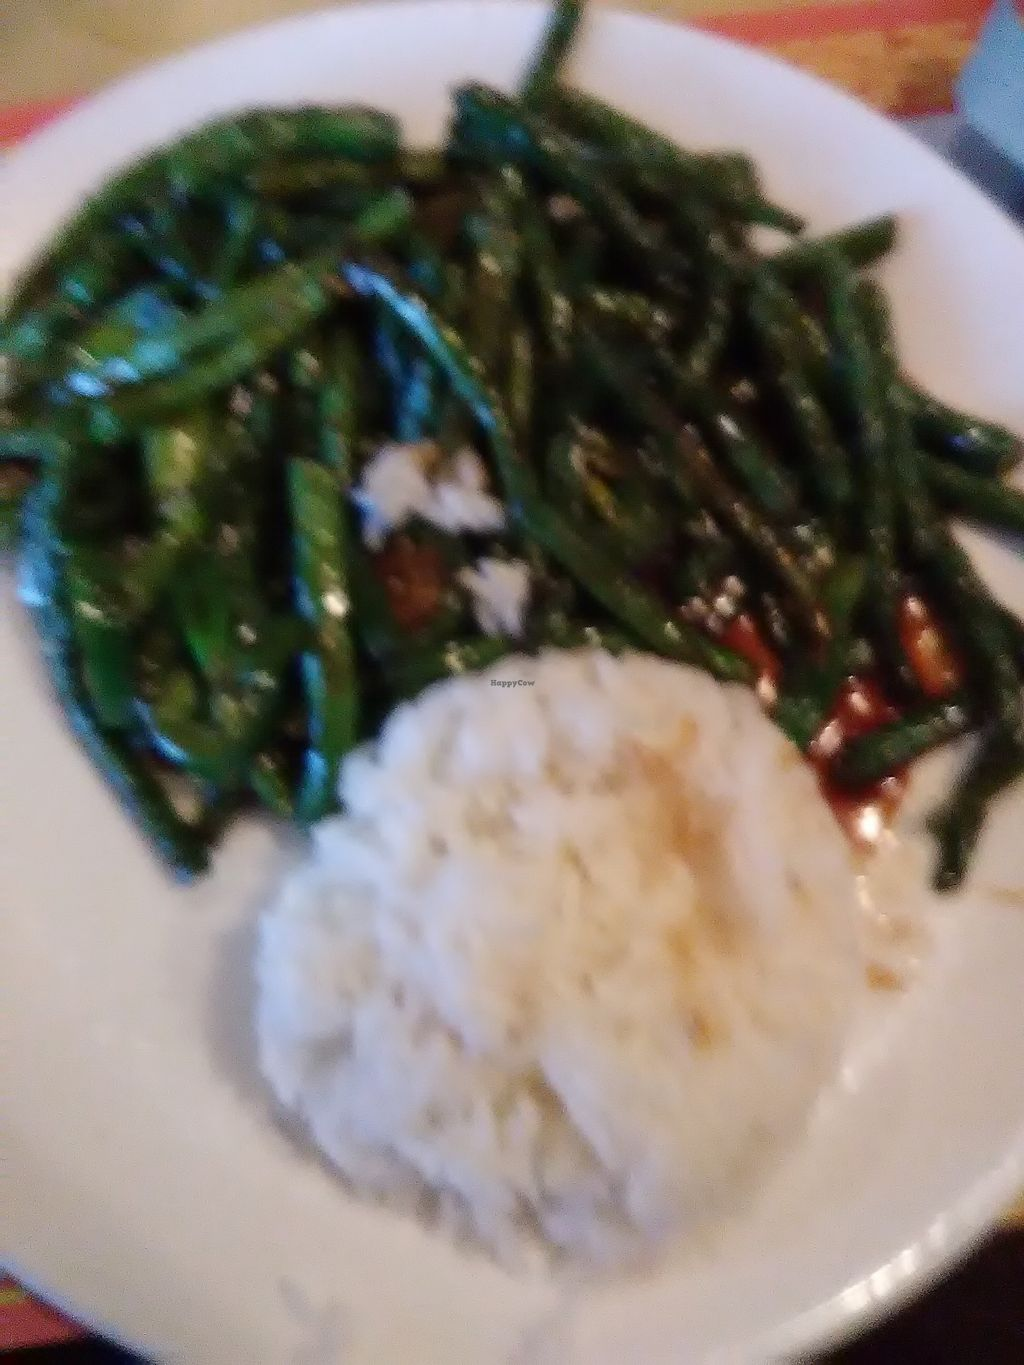 """Photo of Mark Pi's China Gate  by <a href=""""/members/profile/Williamewq123ify"""">Williamewq123ify</a> <br/>Mala String Beans (already vegan and on the menu) <br/> January 17, 2018  - <a href='/contact/abuse/image/70396/347476'>Report</a>"""